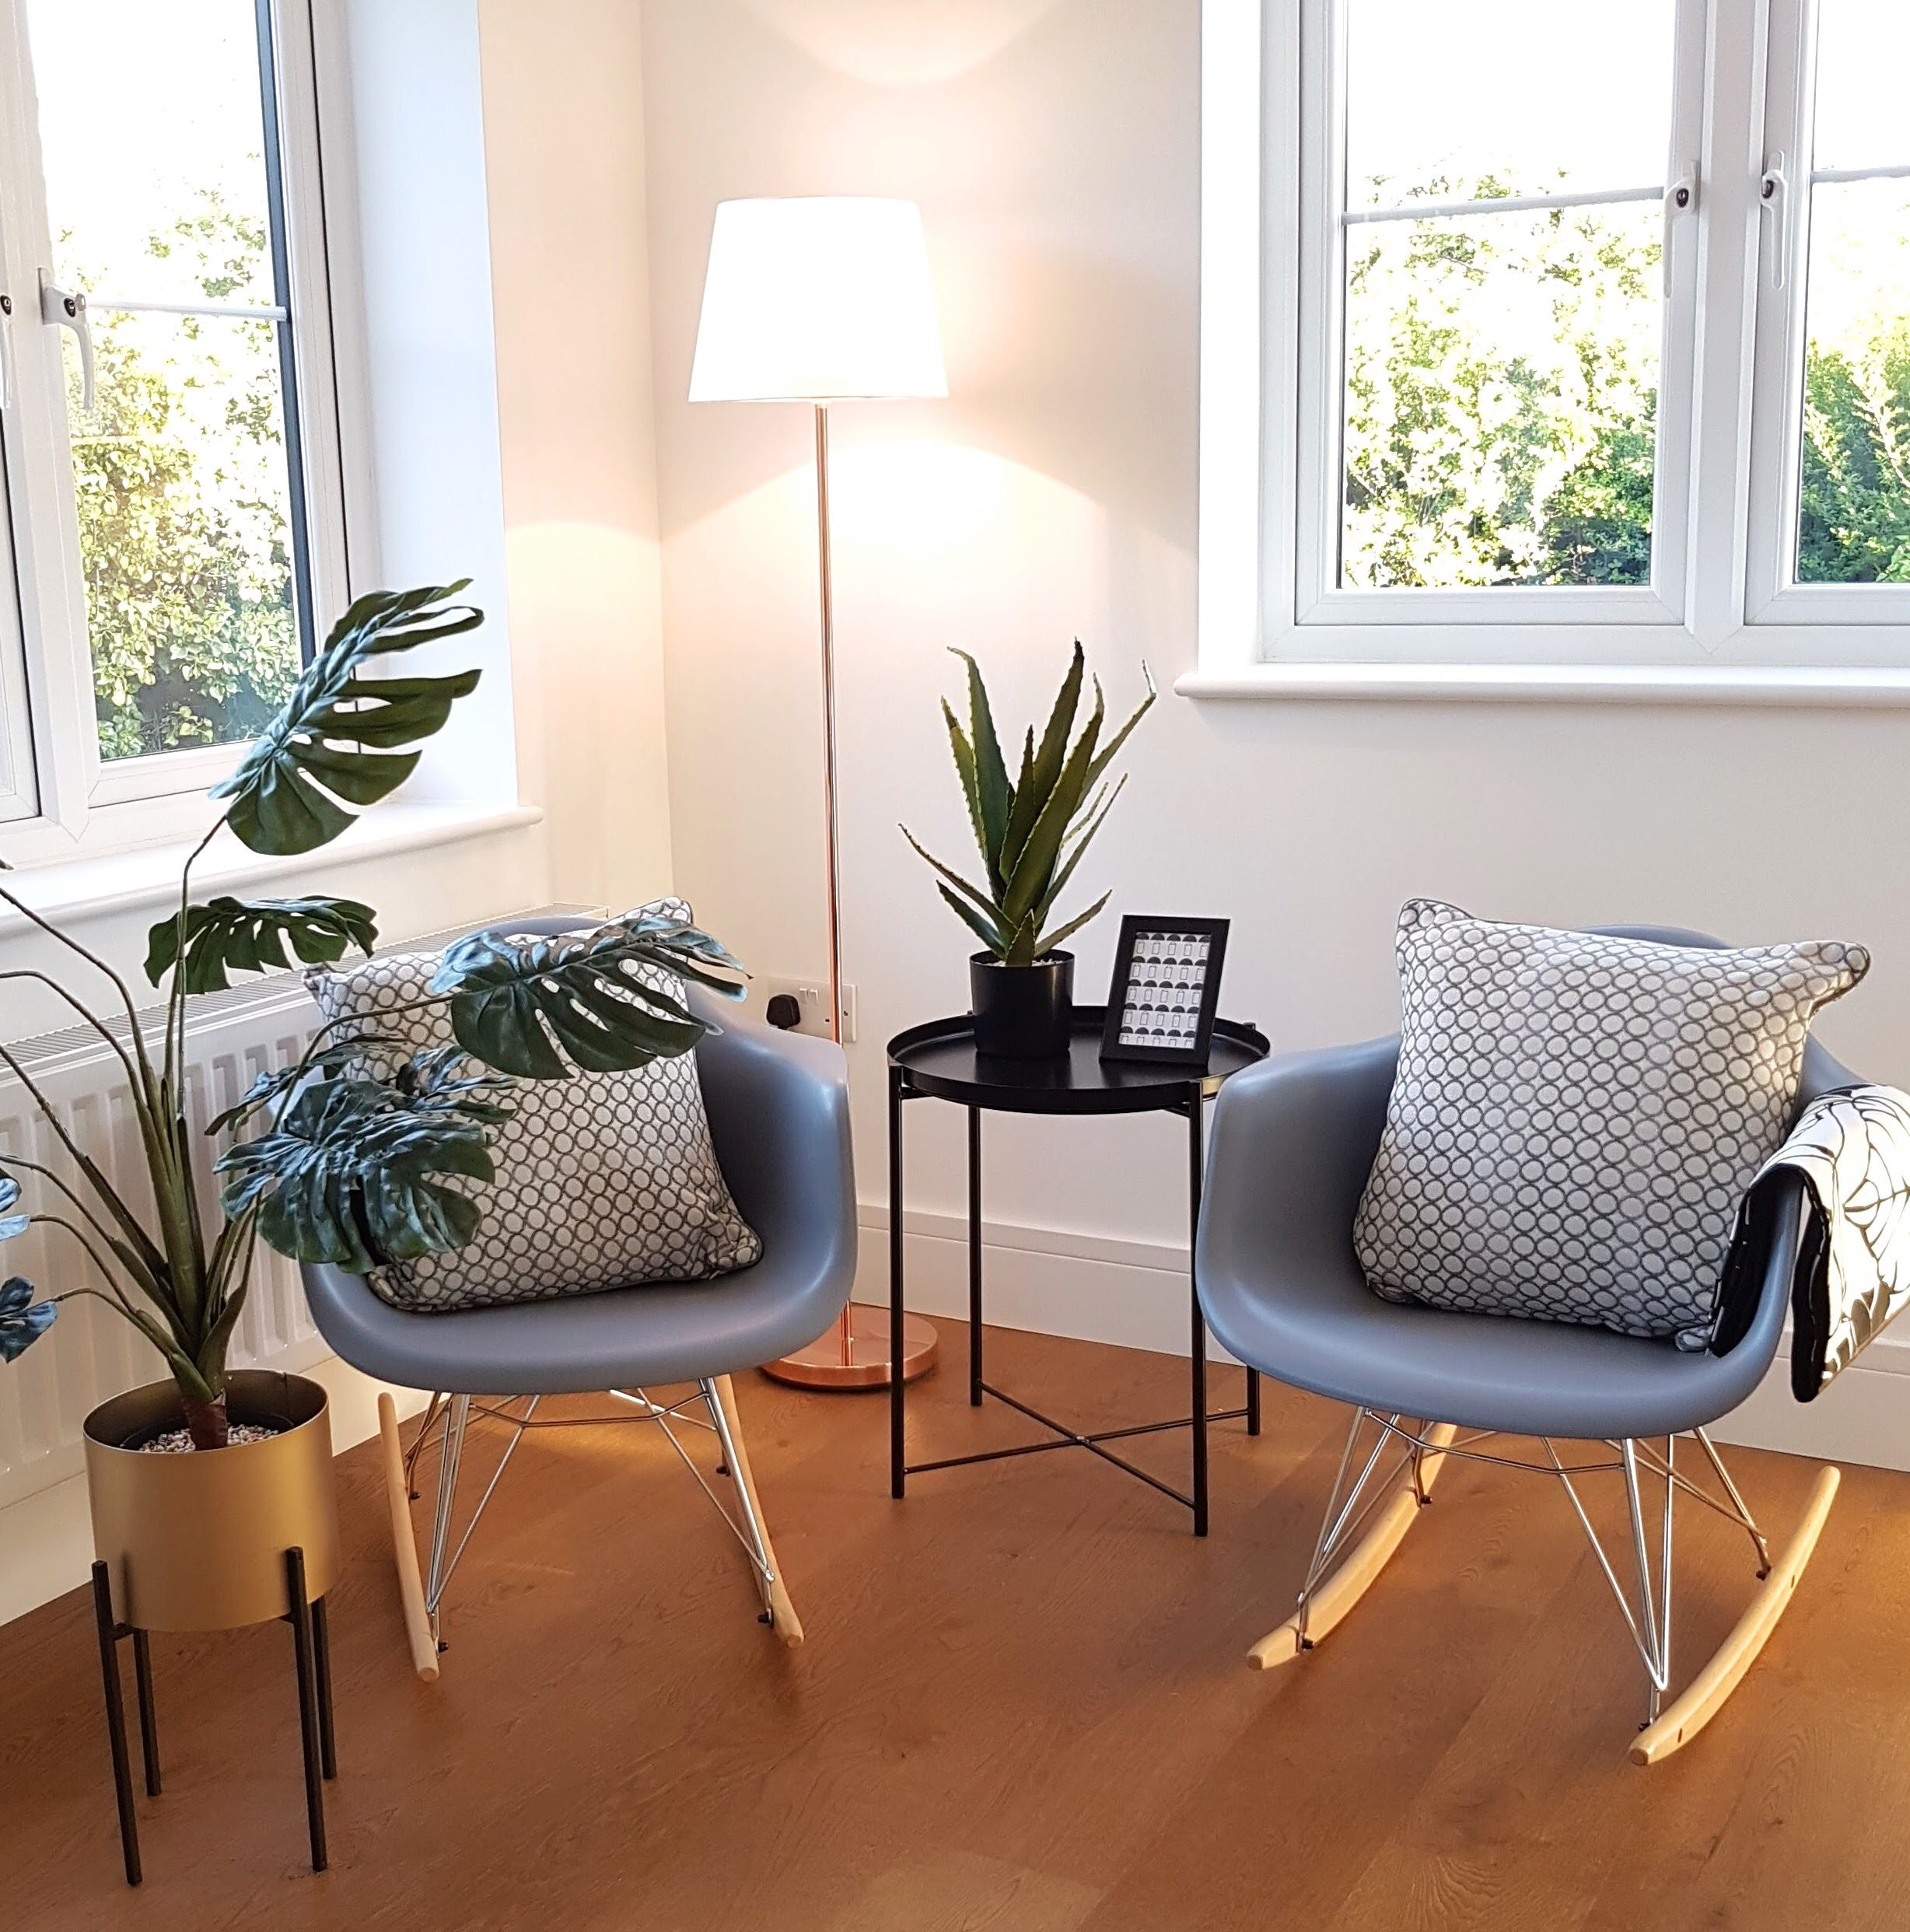 Eames chairs and Cheese plants, perfect coffee place ...